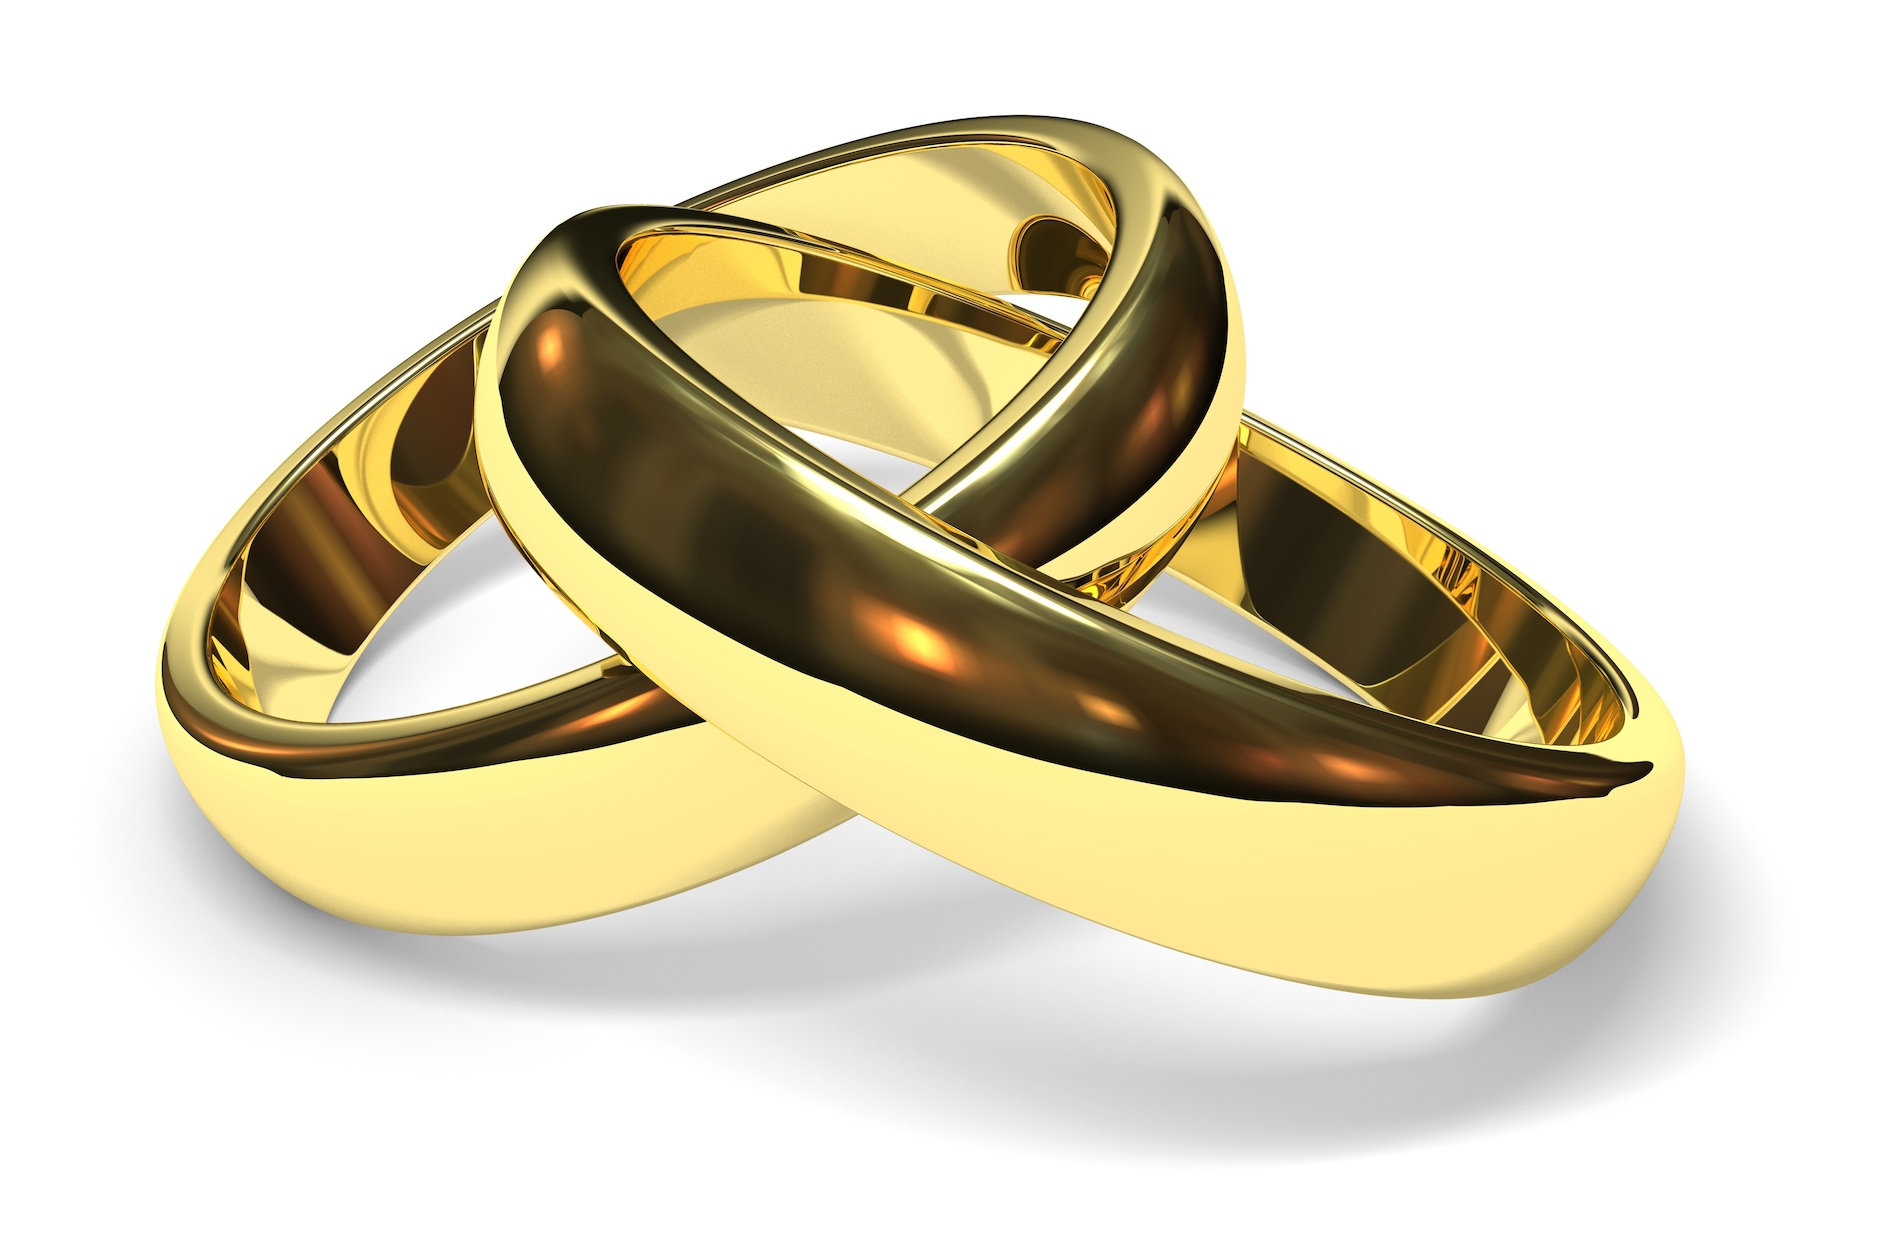 linked gold wedding rings on white background